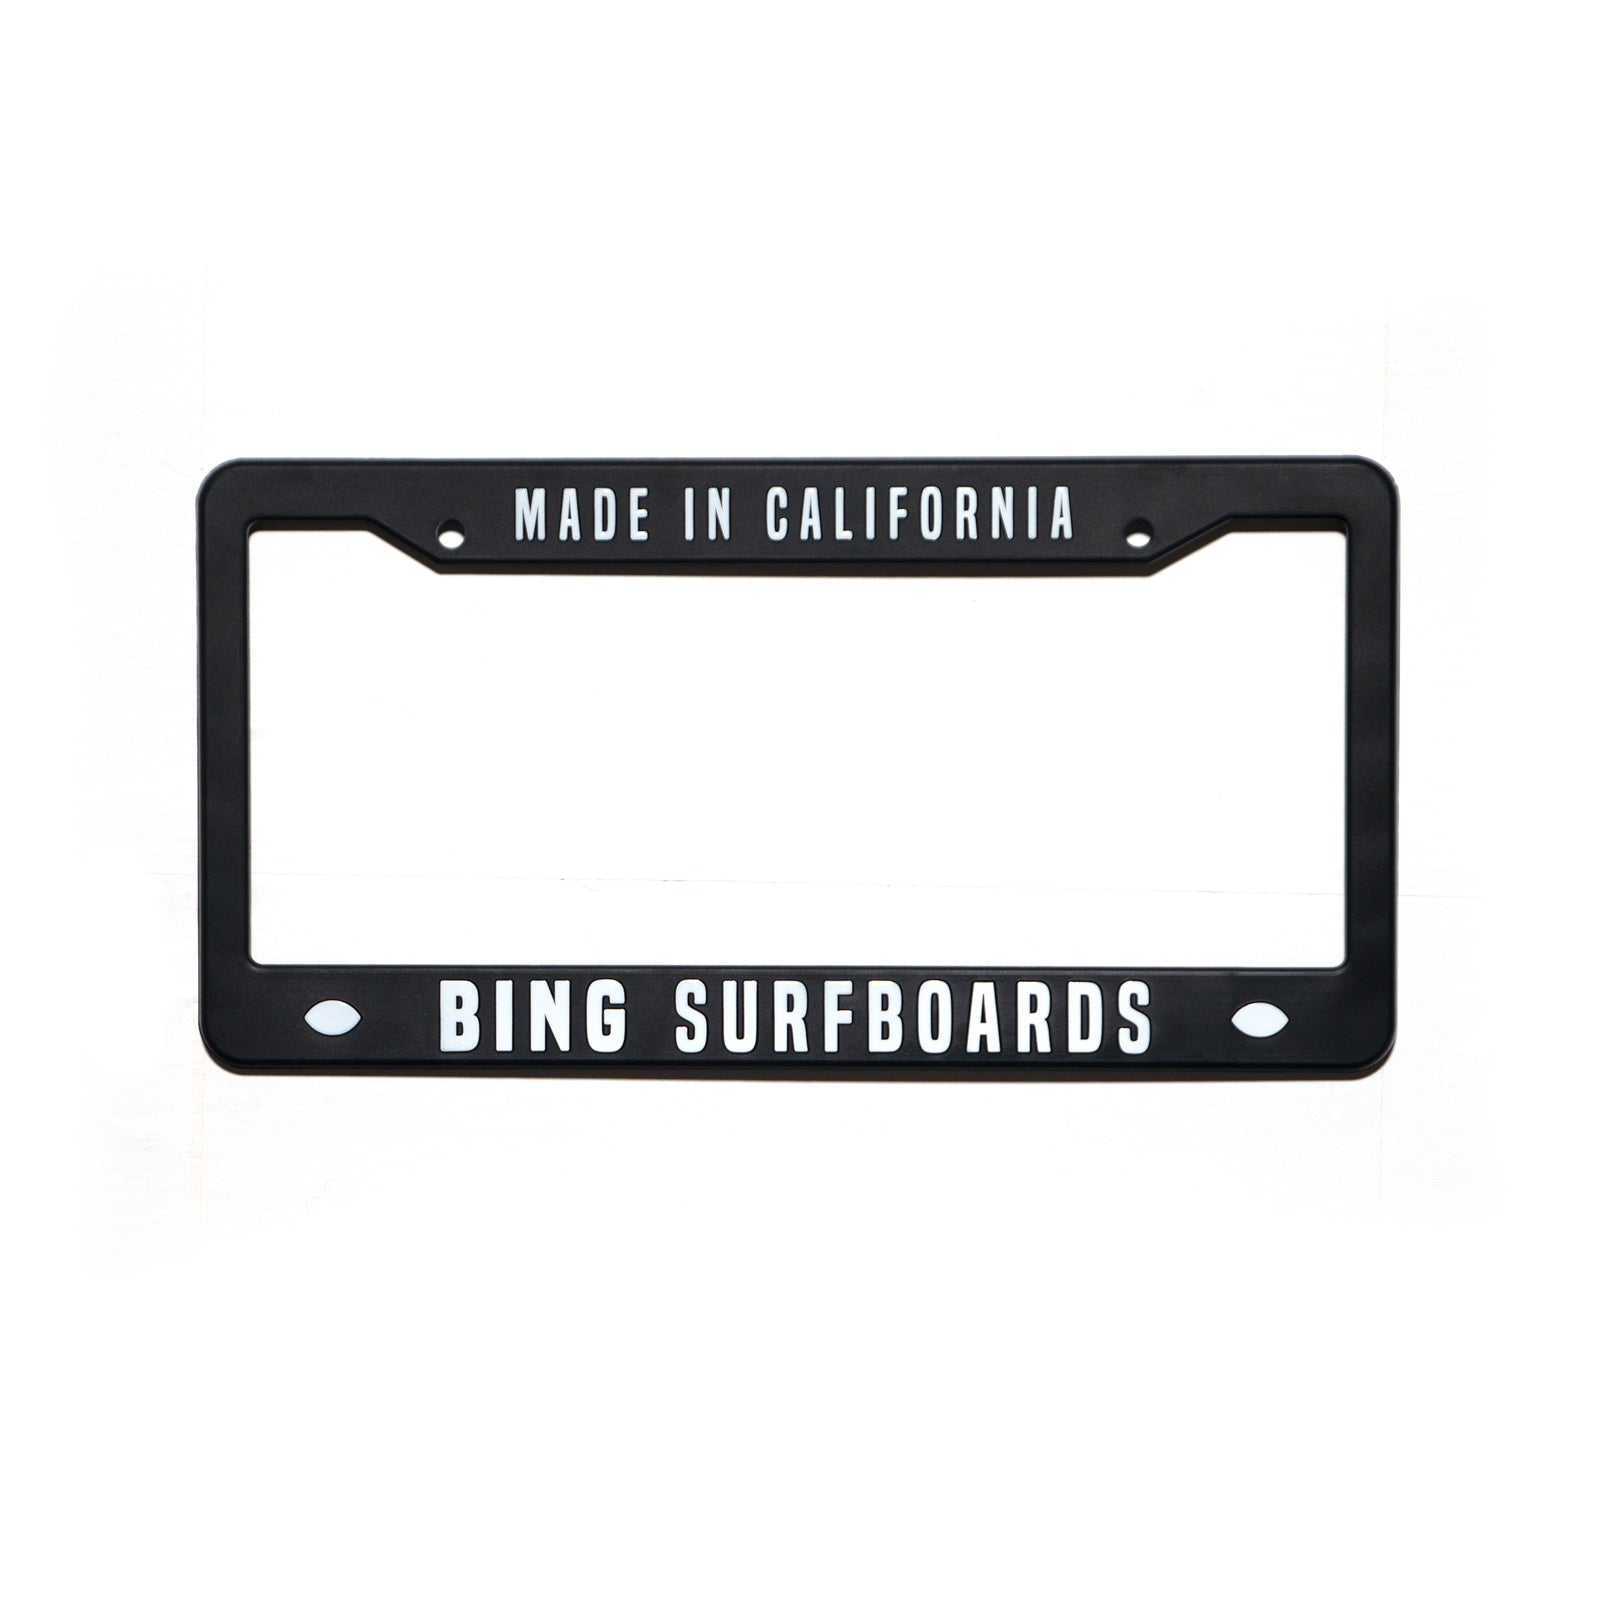 MADE IN CA LICENSE PLATE FRAME